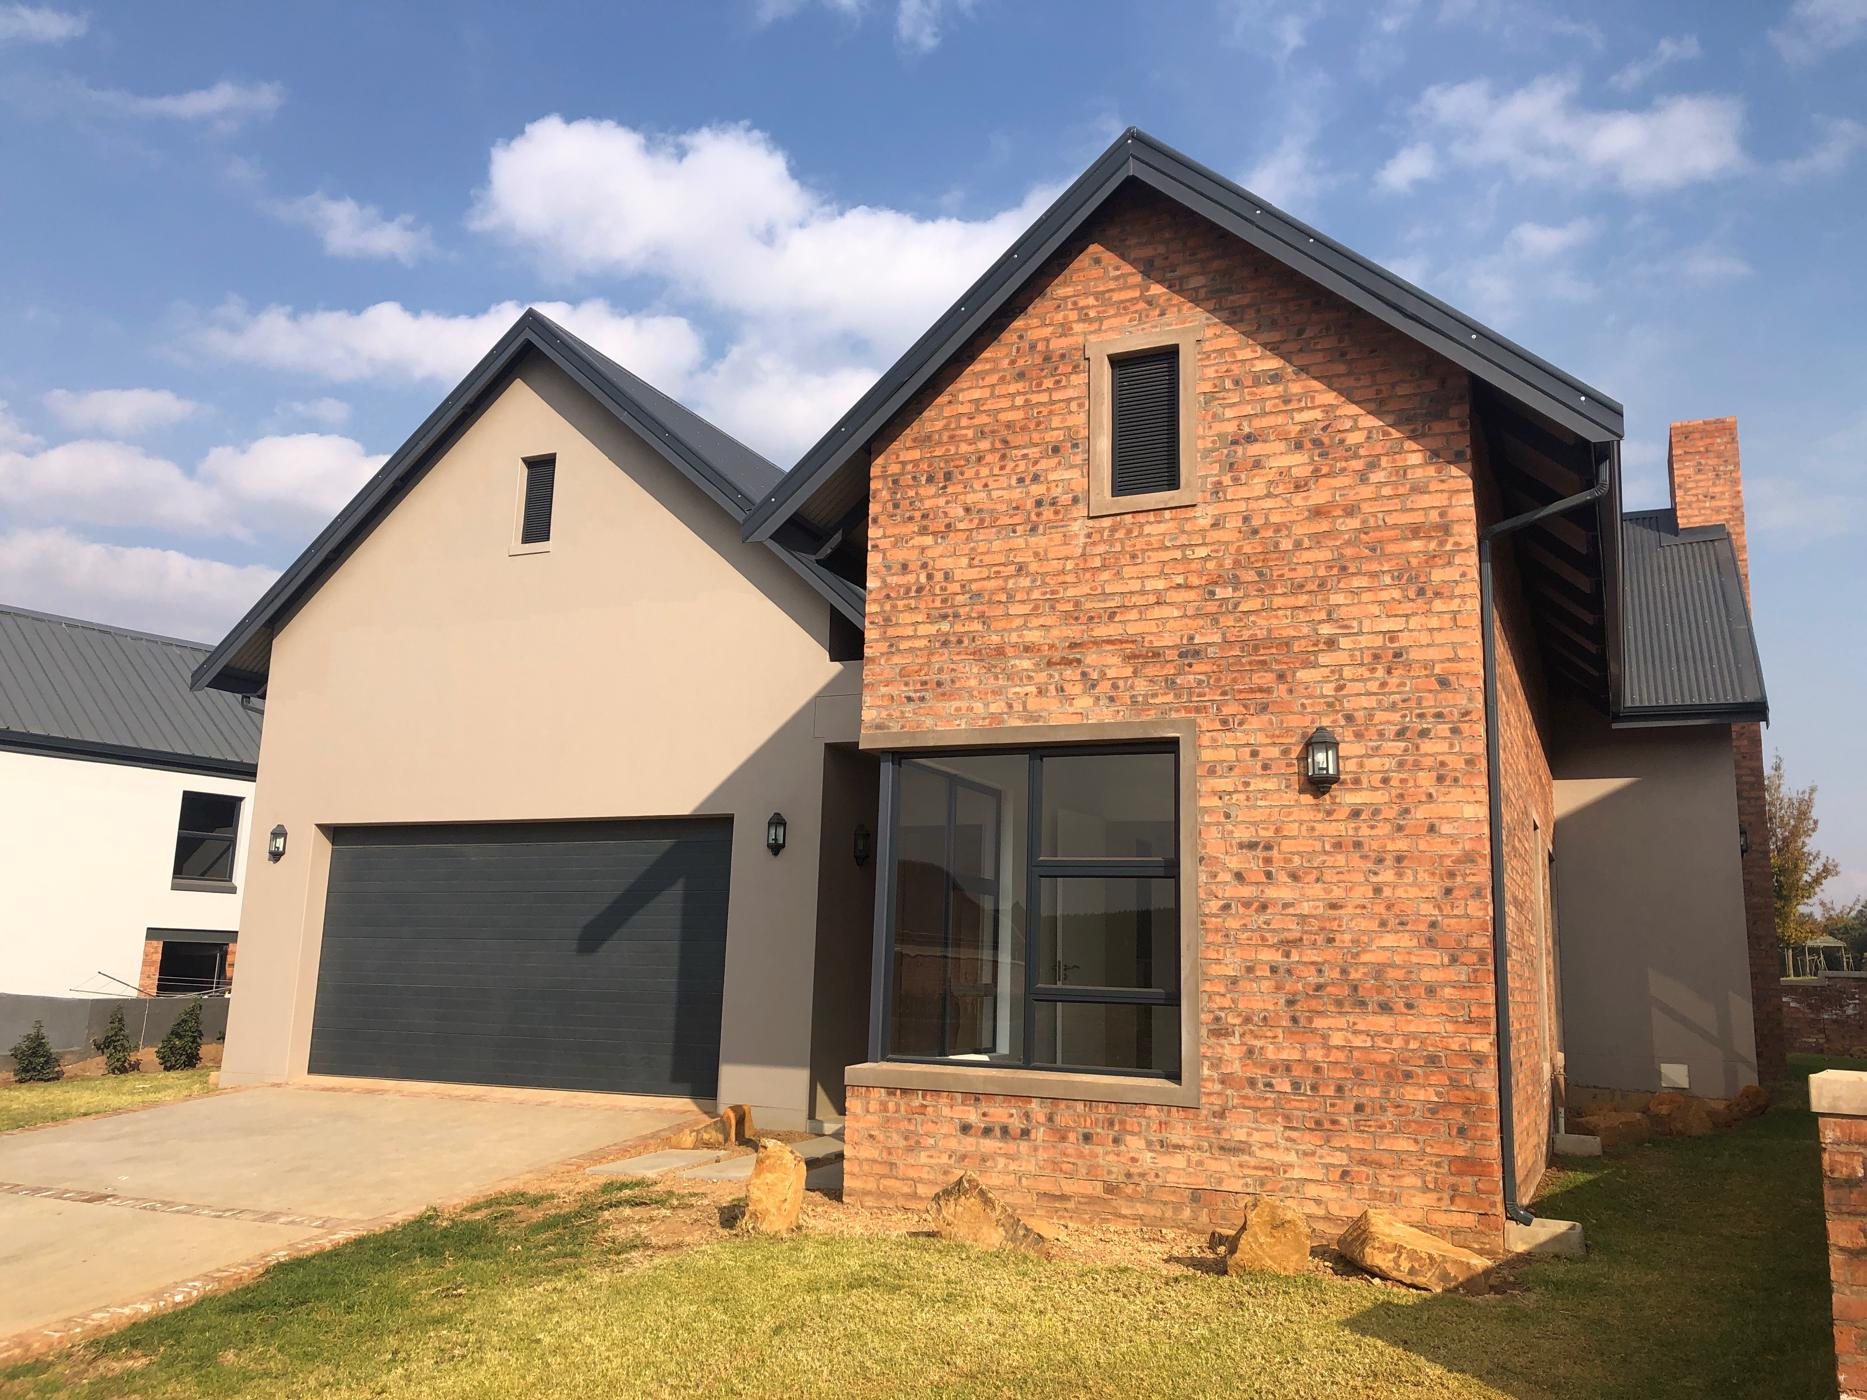 Find houses for sale In Howick | Property for Sale In Howick